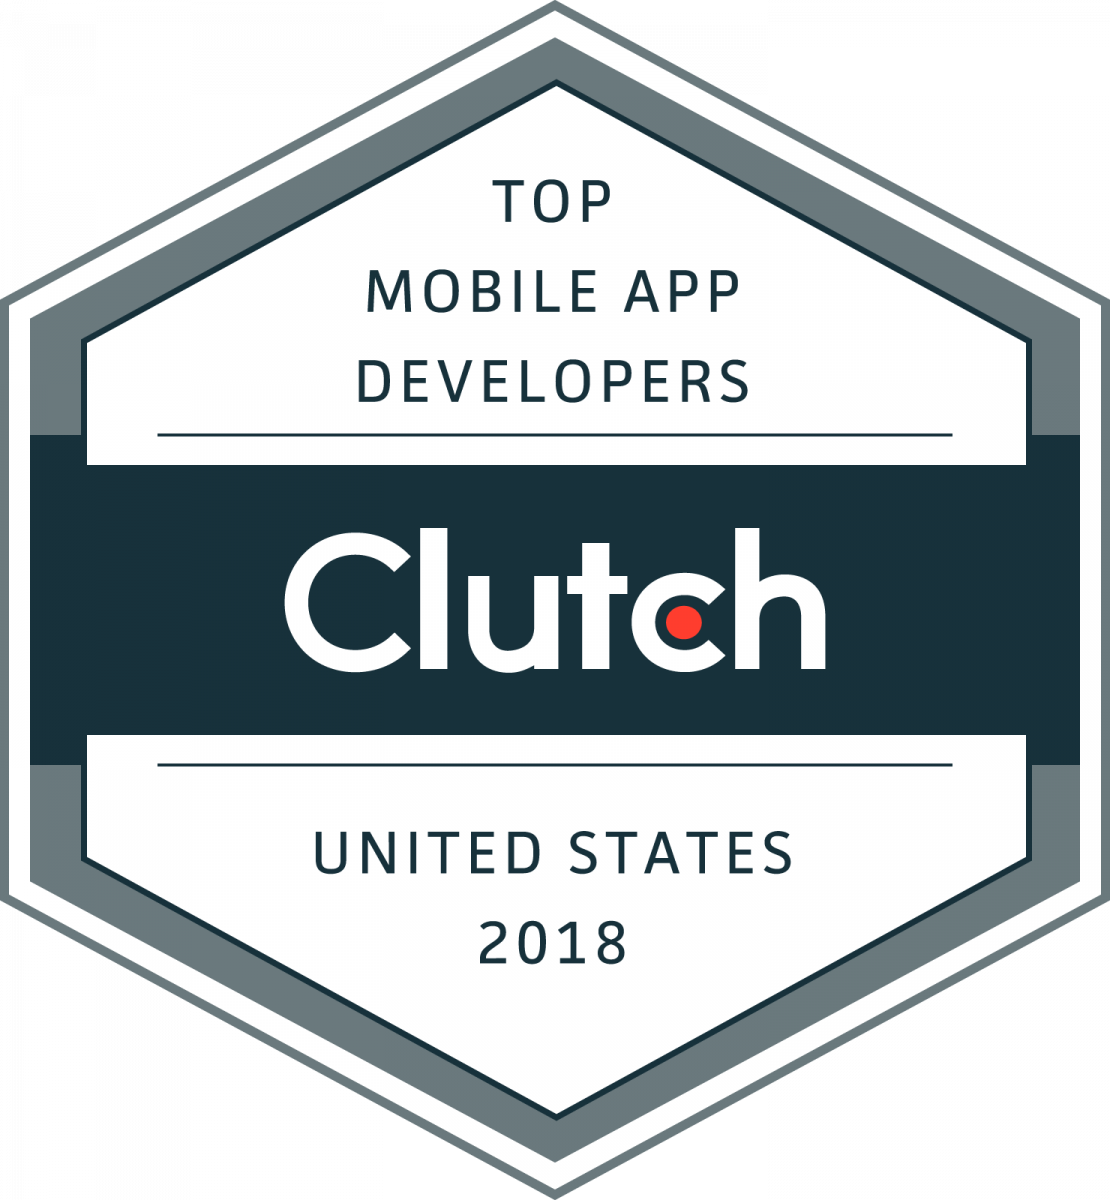 Clutch Top Mobile App Developers 2018